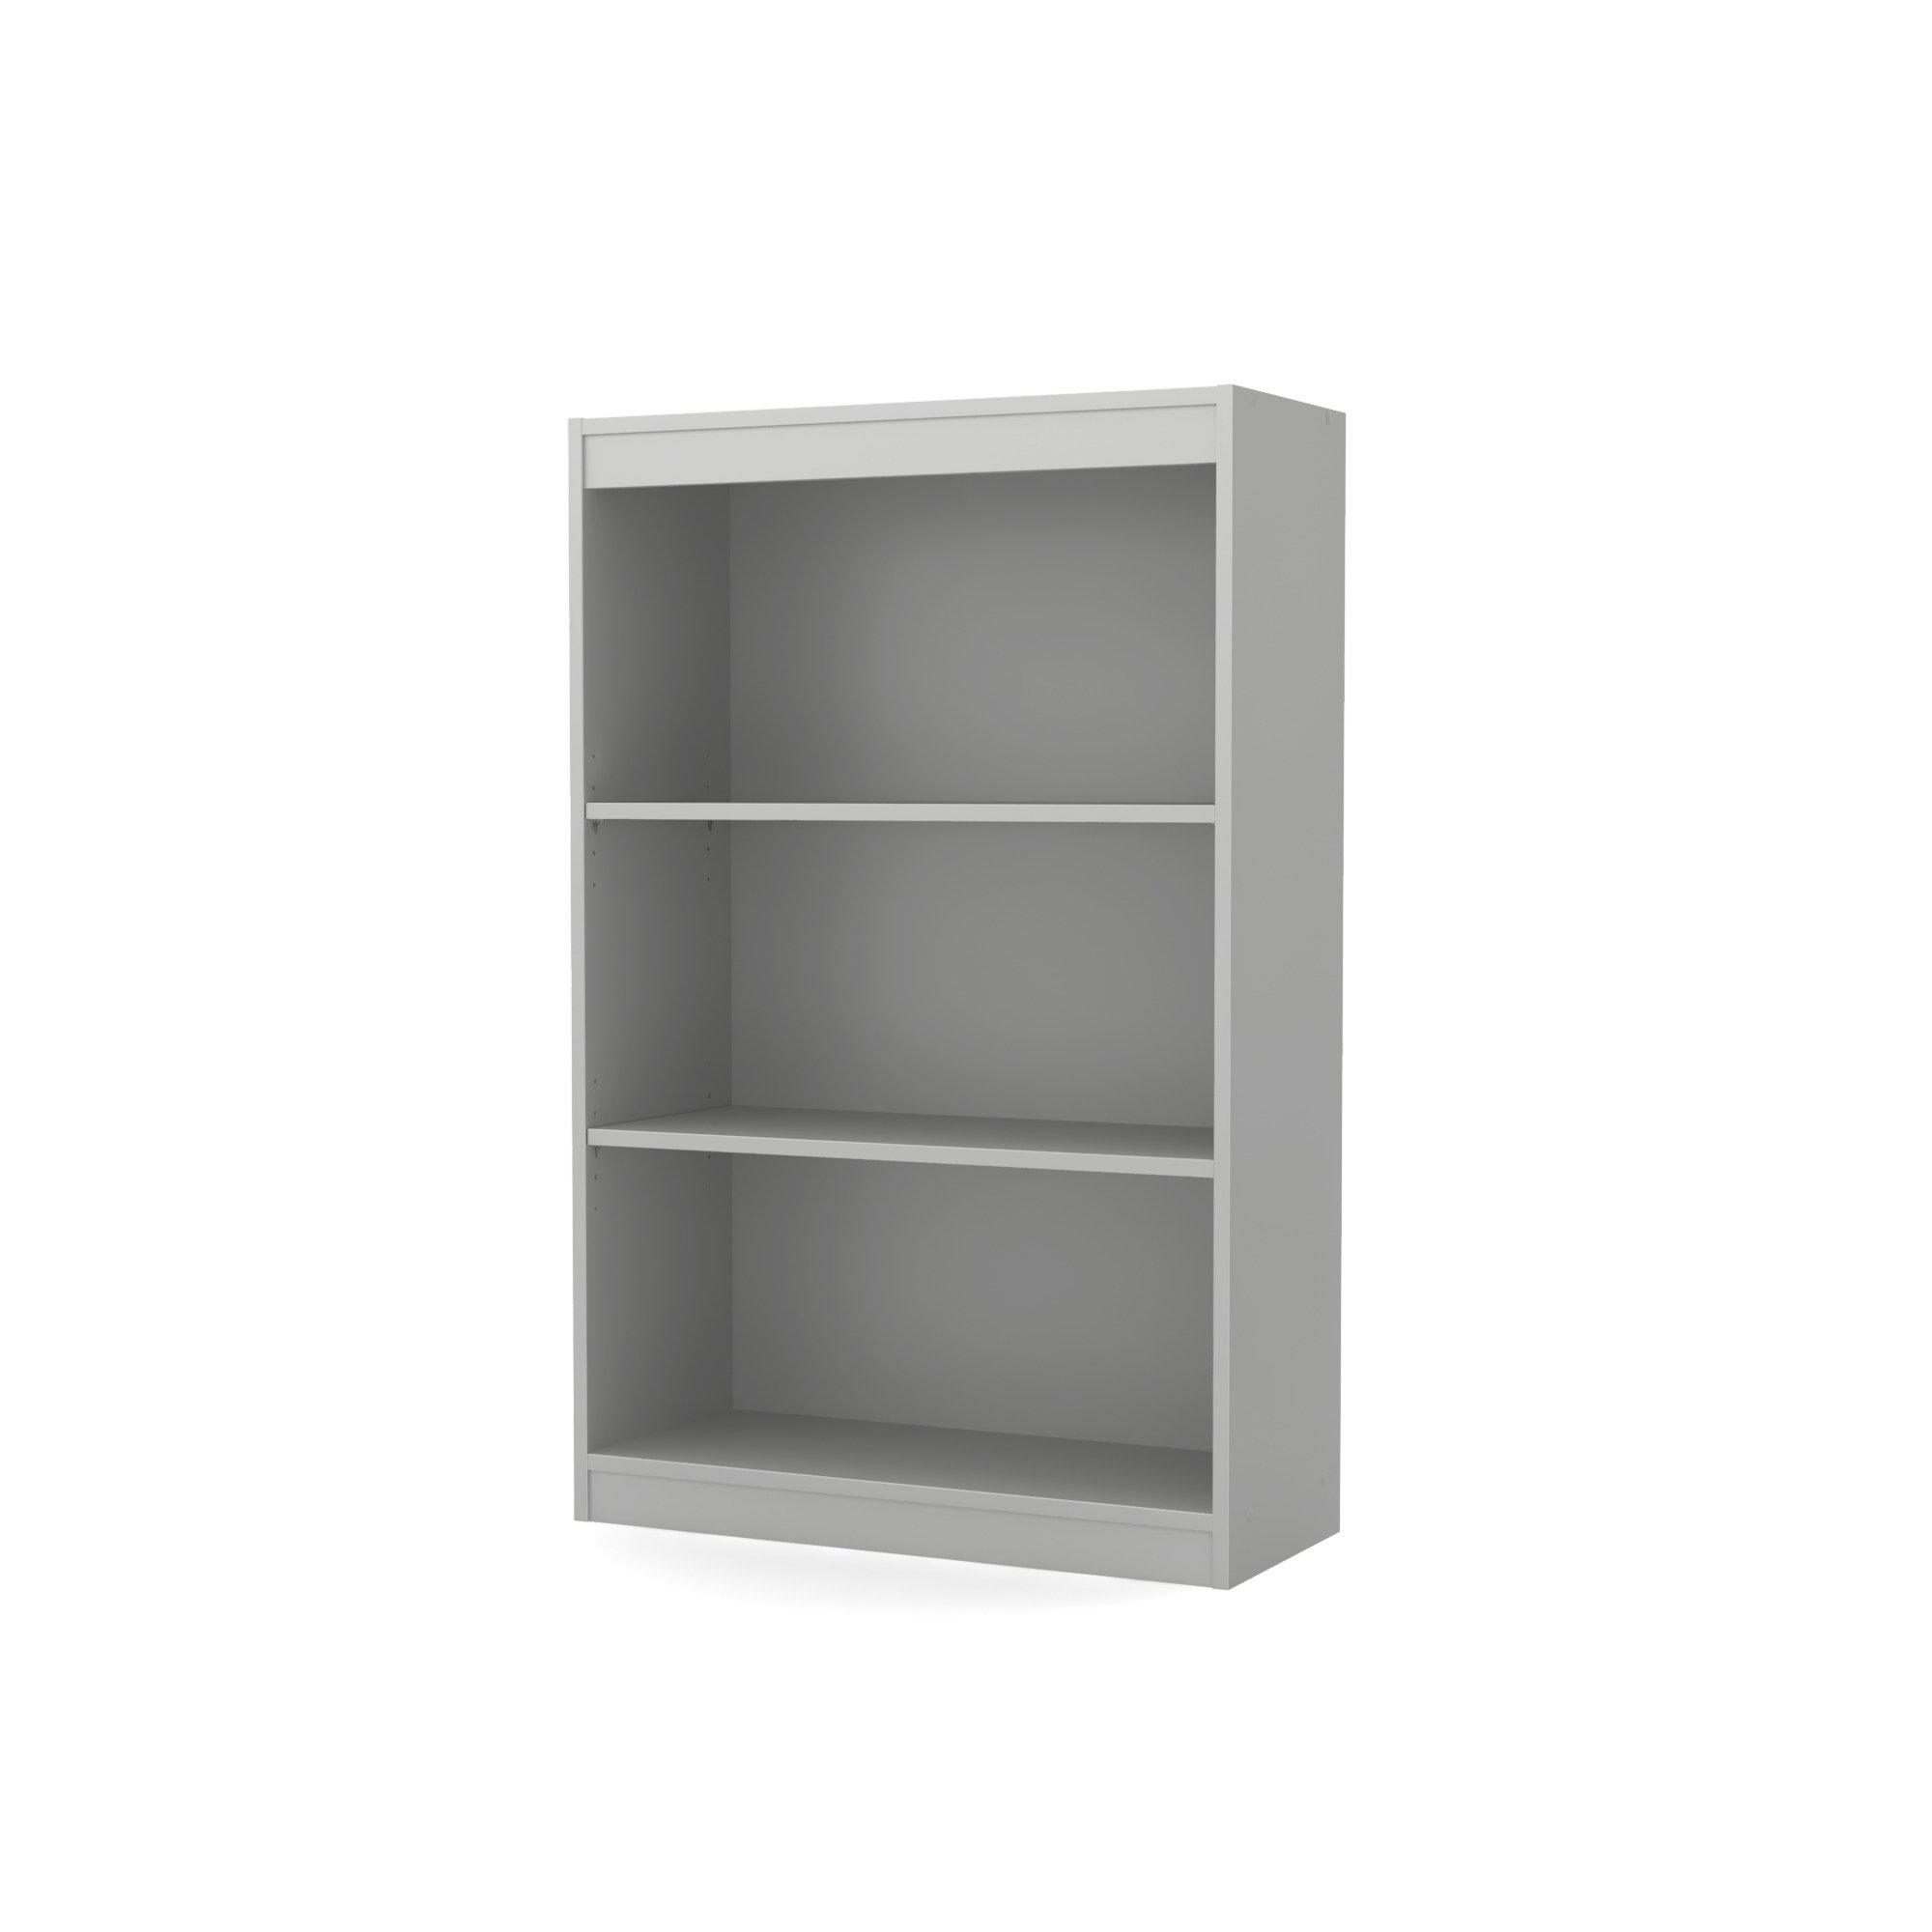 South Shore 3-Shelf Storage Bookcase, Soft Gray by South Shore